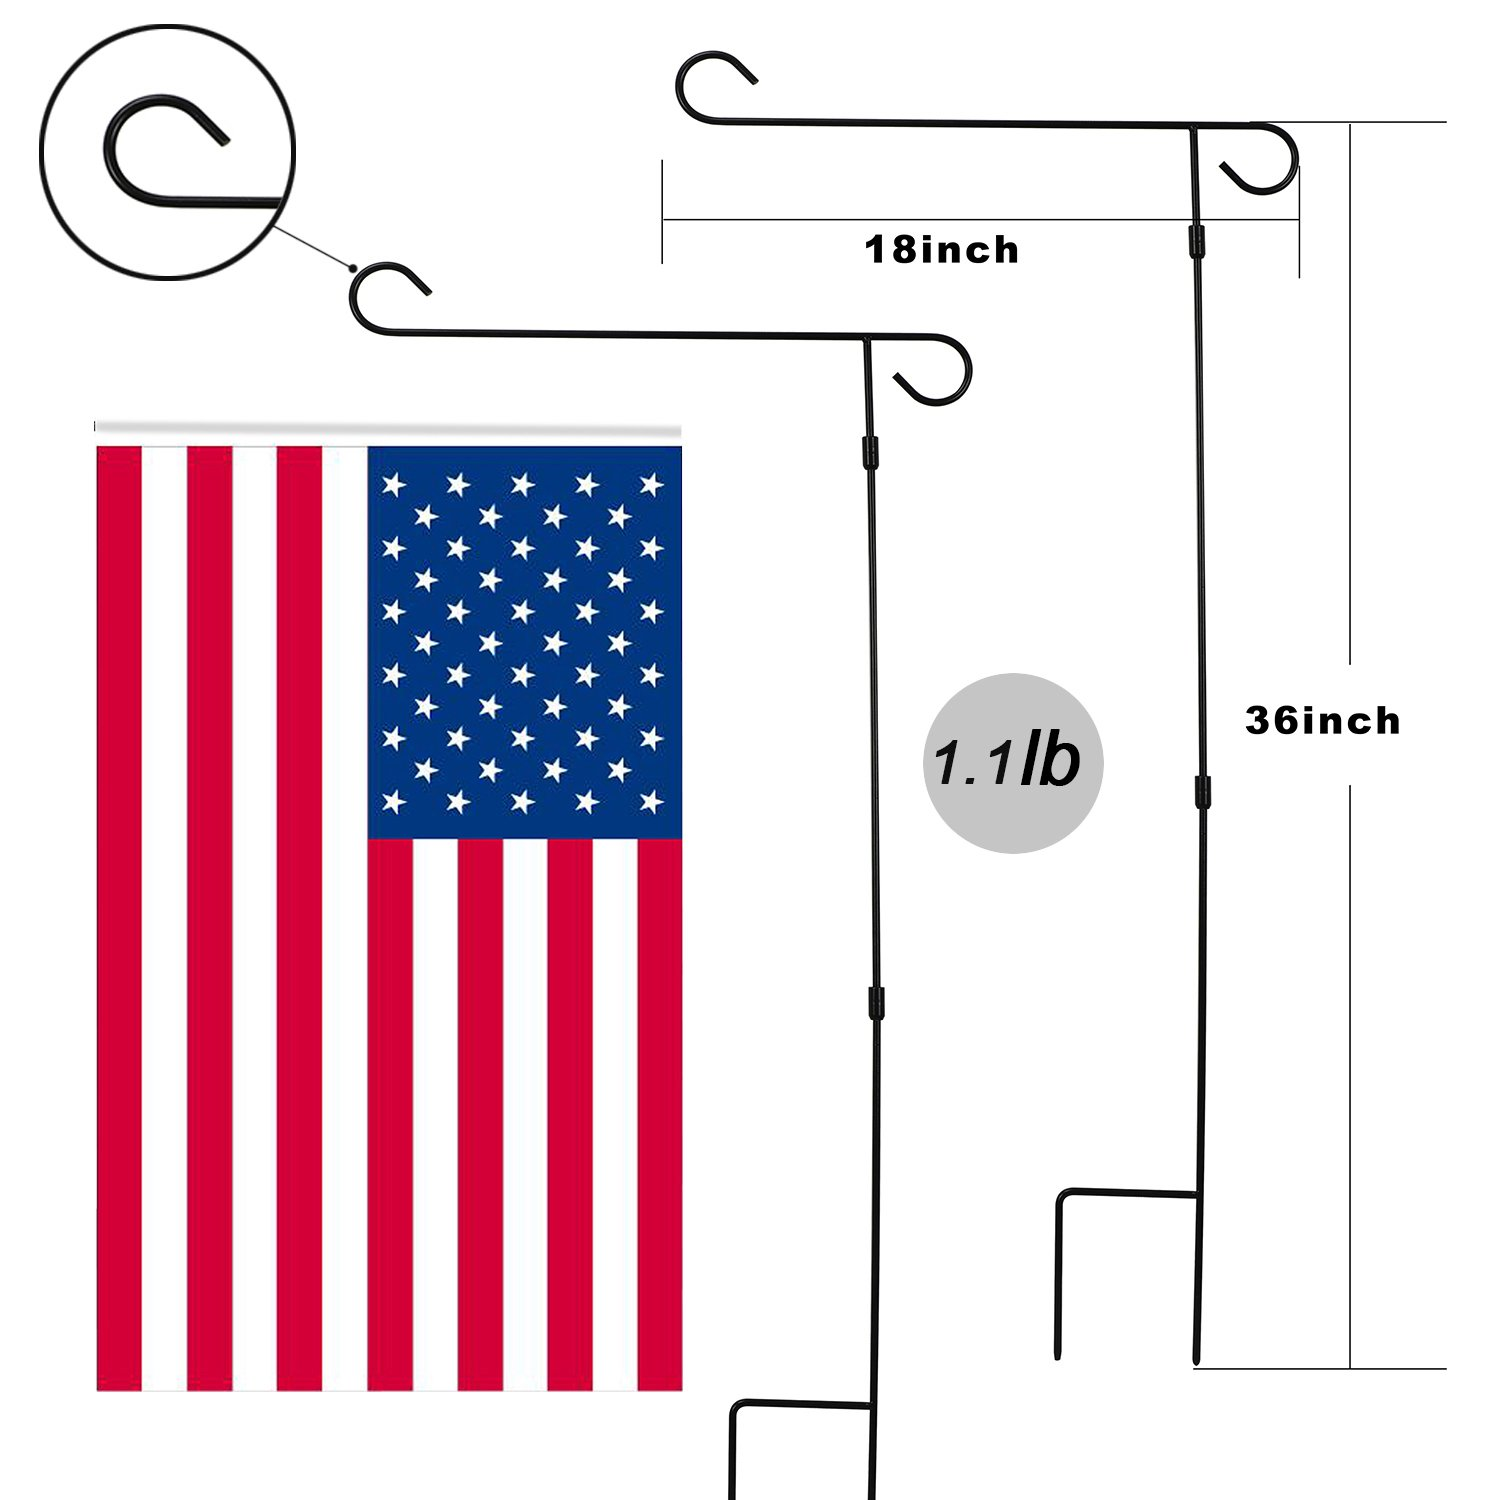 HOOSUN Garden Flag Stand Holder Pole Easy to Install Strong Sturdy Wrought Iron 36'' x 18'' Fits 12.5'' x 18'' Mini Flag with 1 Tiger Anti-Wind Clip 2 Anti-Wind Spring Stoppers by HOOSUN (Image #2)